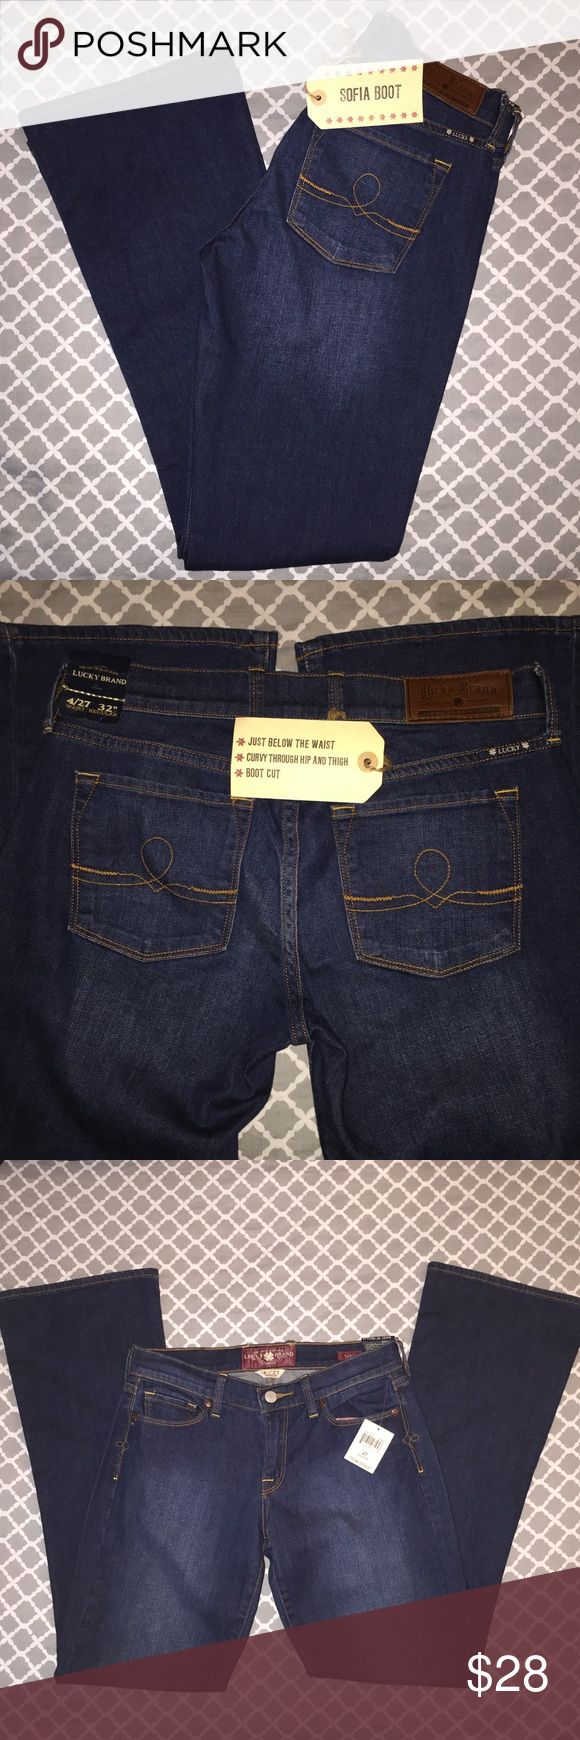 """NWT Lucky Brand Sofia Bootcut Jeans Size 4/27 Lucky Brand Sofia Bootcut Jeans Size 4/27  * Brand: Lucky Brand * Size: 4/27 * Color: Dark Wash * Materials: 99% Cotton, 1% Spandex * Measurements taken laying flat & approximate: Waist 14.5"""", Inseam 32"""", Rise 8"""", Leg opening 9"""" * Features: Sits just below waist, curvy through hip and thighs, stitch design details on hips and back pockets, floral fabric on inside of front pockets * Condition: New with tags, stored in drawer with fragrance sachet…"""